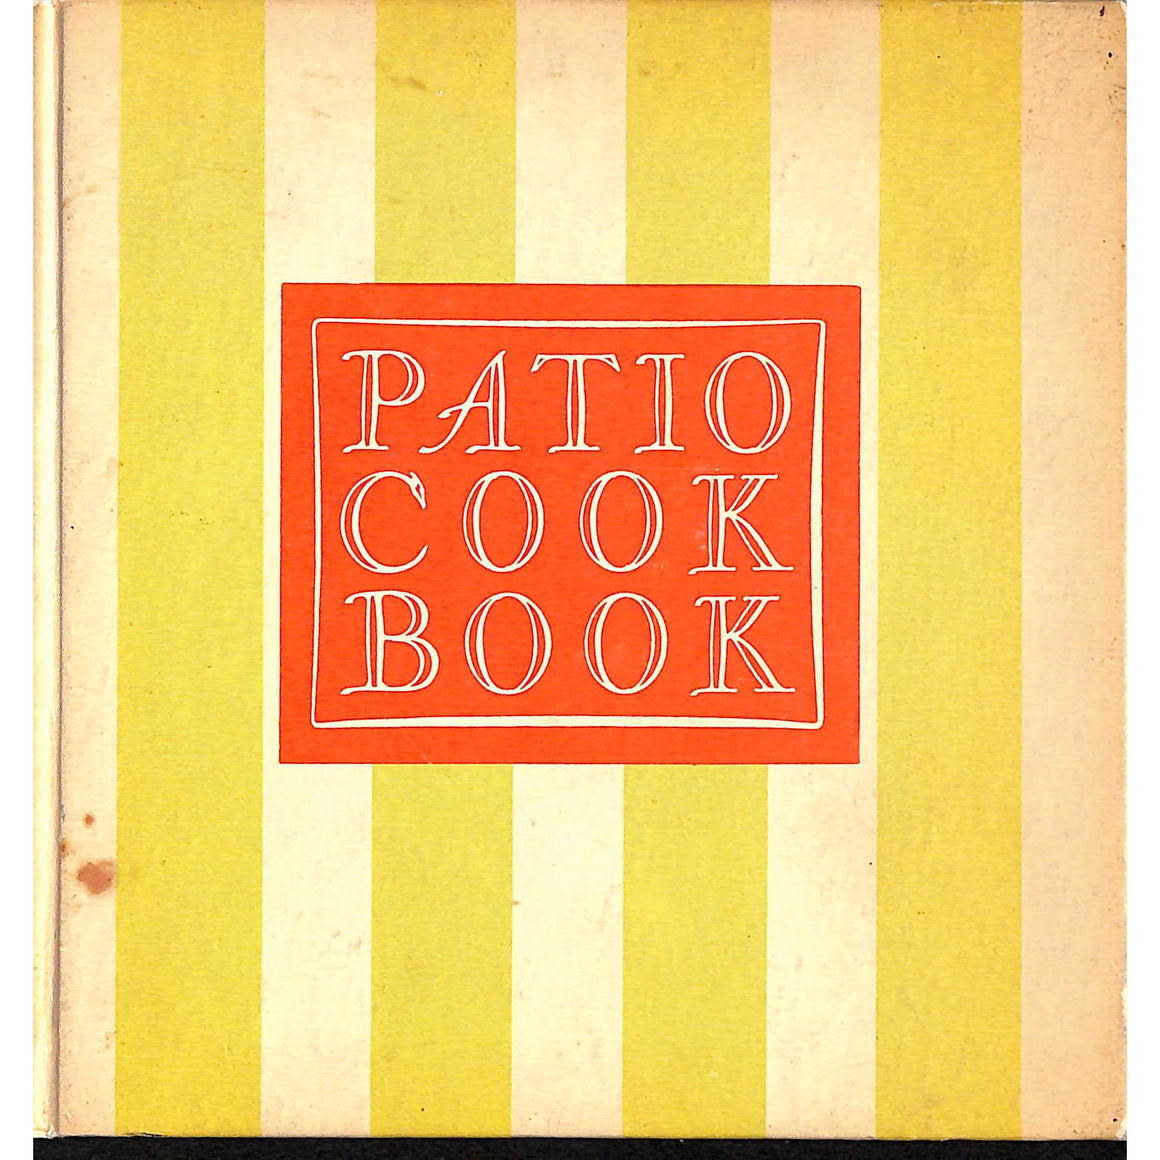 Patio Cook Book